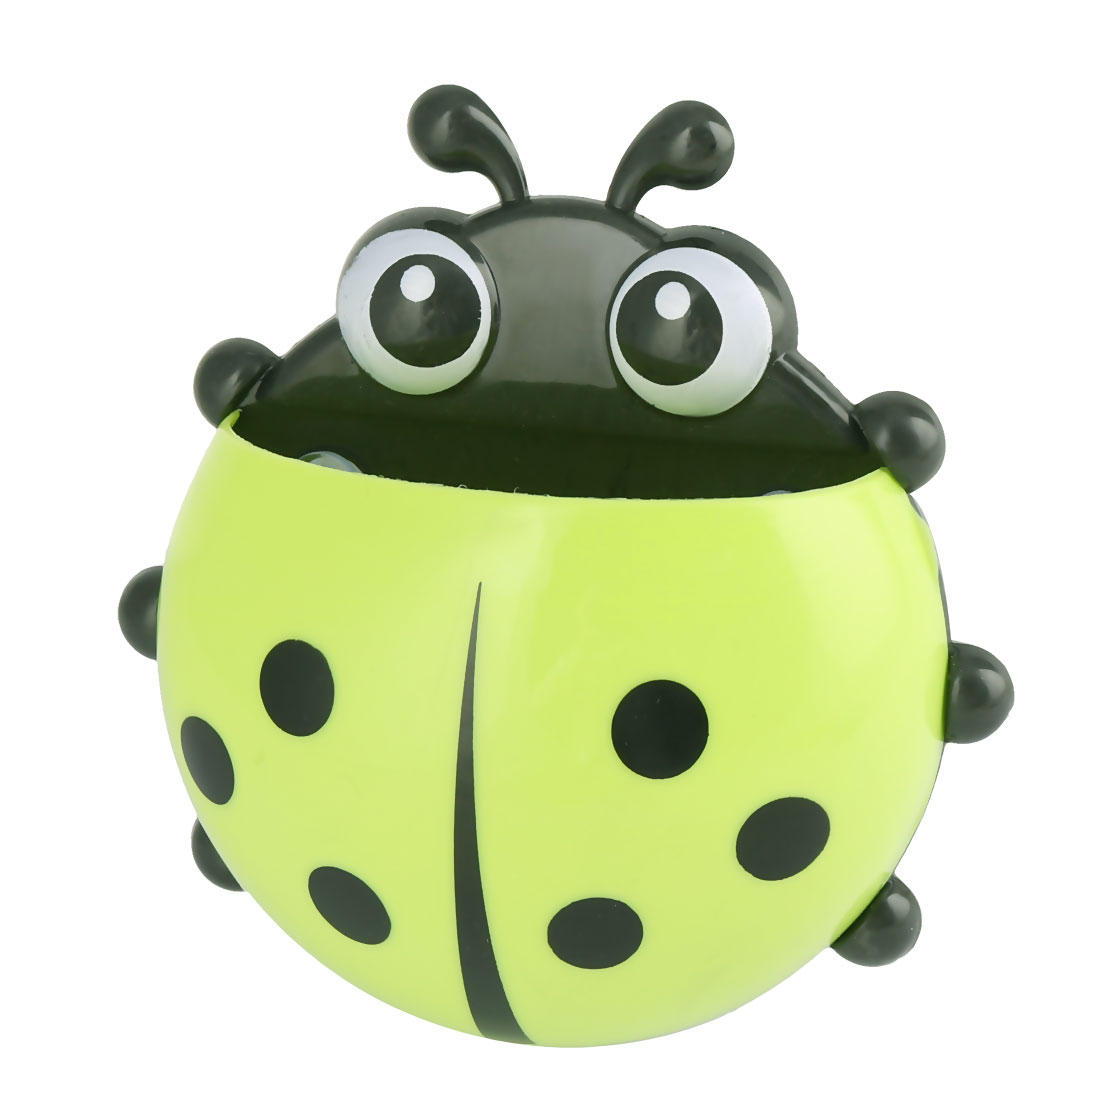 Ladybird Design Bathroom Suction-up Toothbrush Toothpaste Holder Green